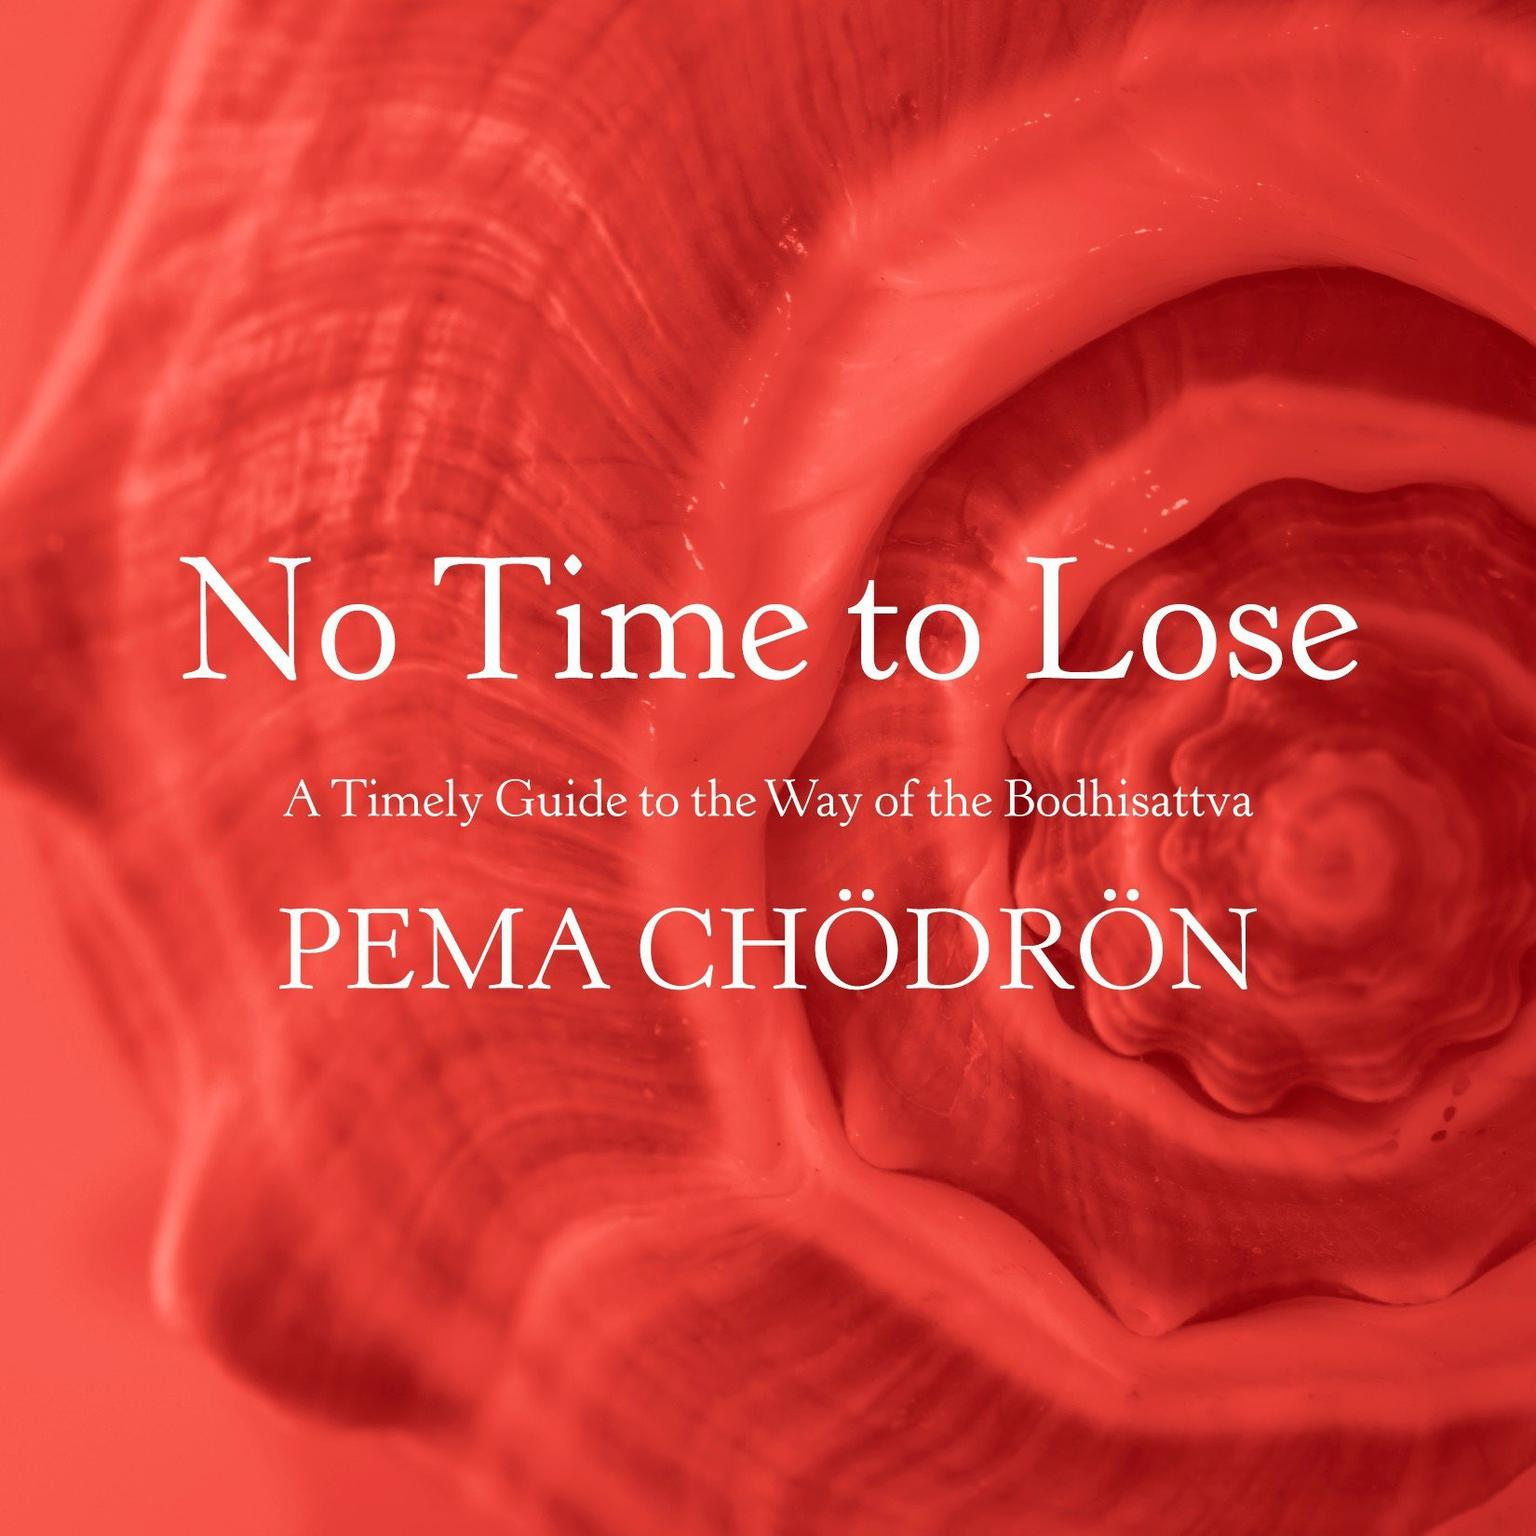 No Time to Lose: A Timely Guide to the Way of the Bodhisattva Audiobook, by Pema Chödrön